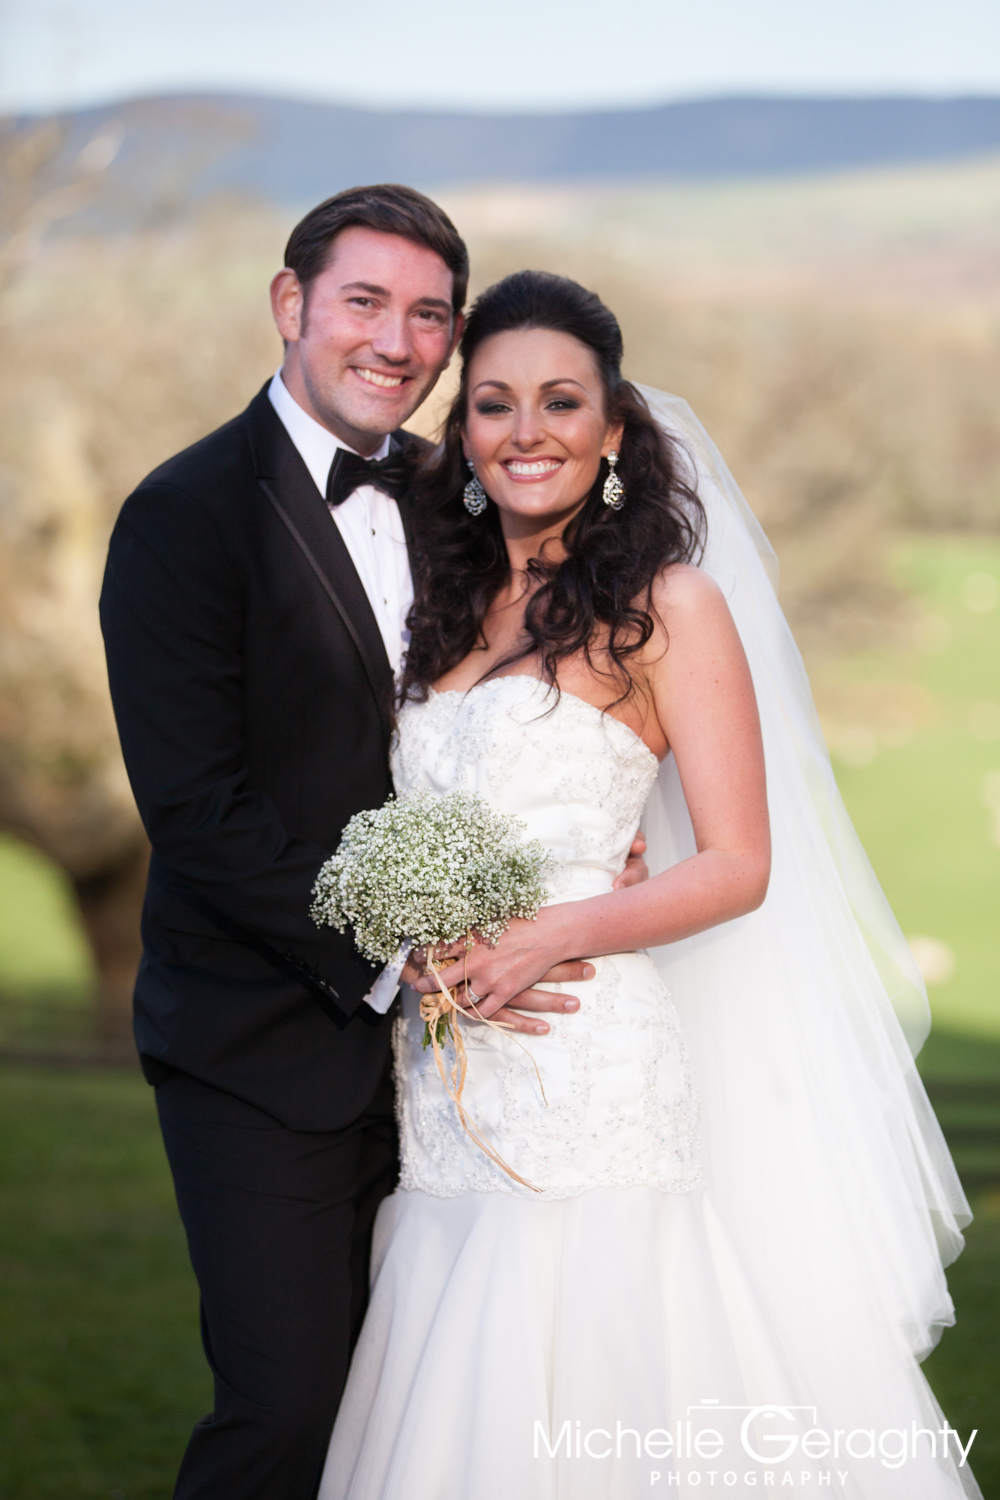 1416-Michelle Geraghty Photography_Mary & Connal-IMG_4248.jpg